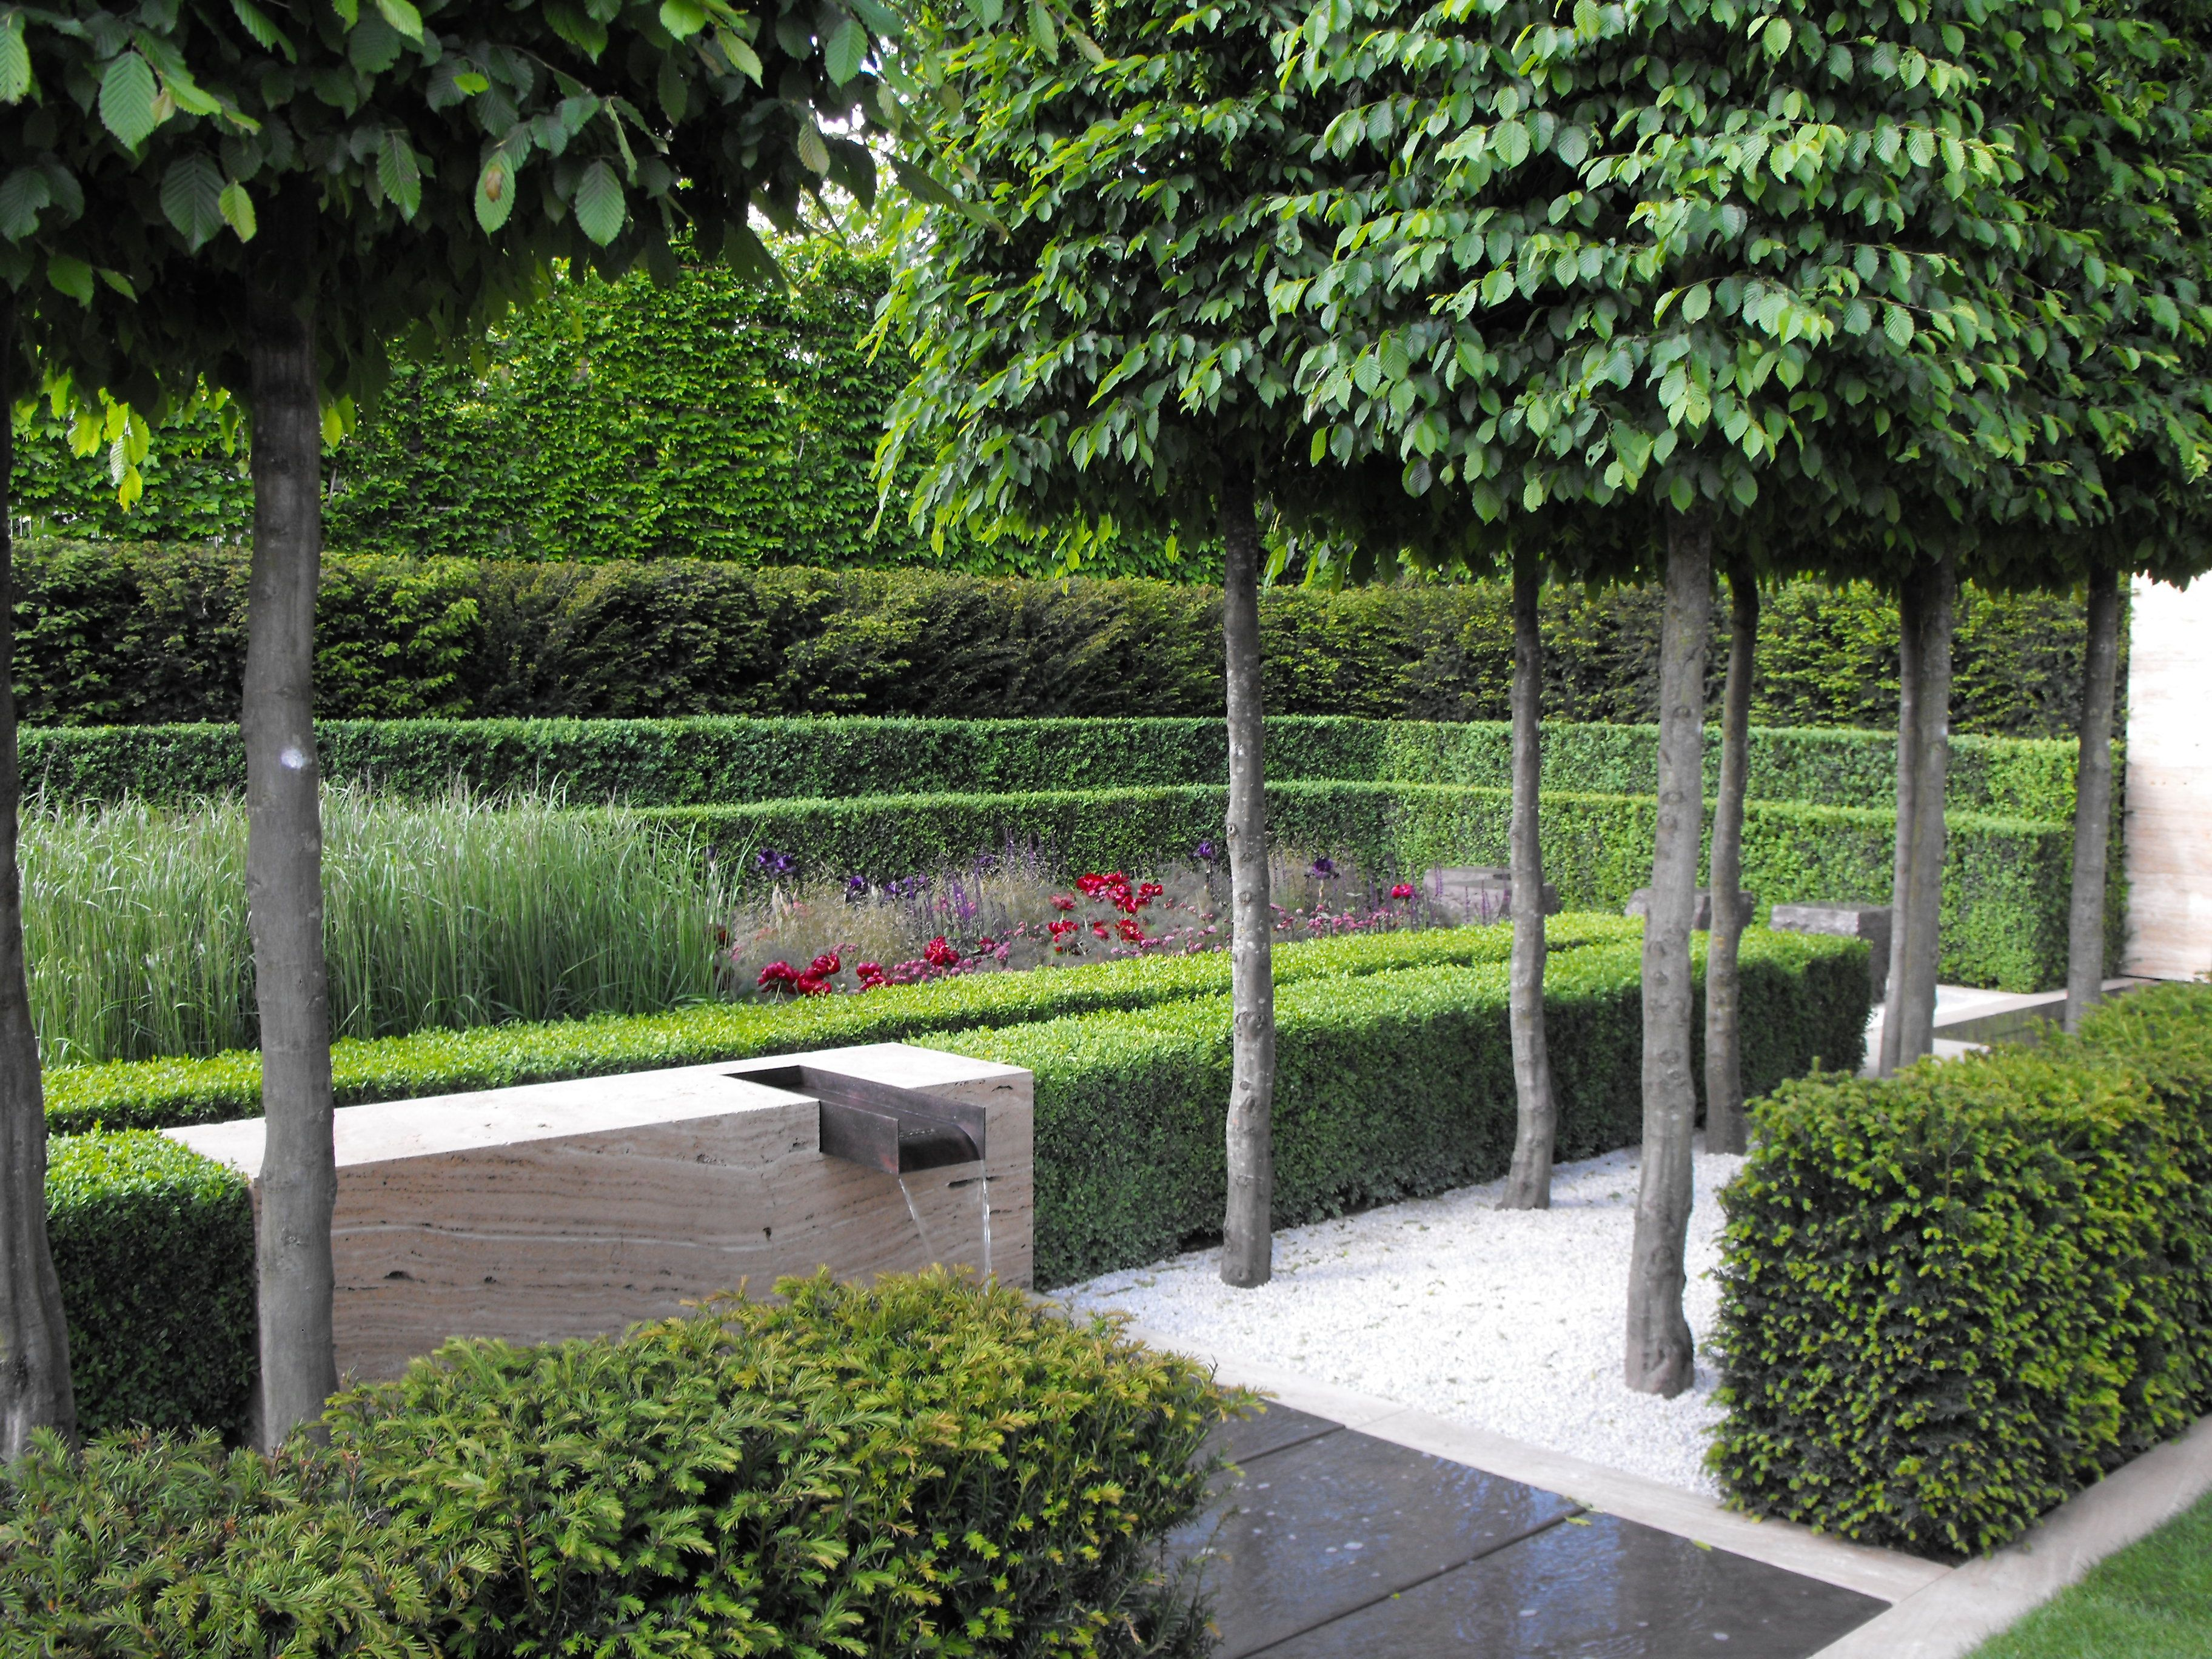 Garden designer Luciano Giubbilei known  for his simple but classic designs